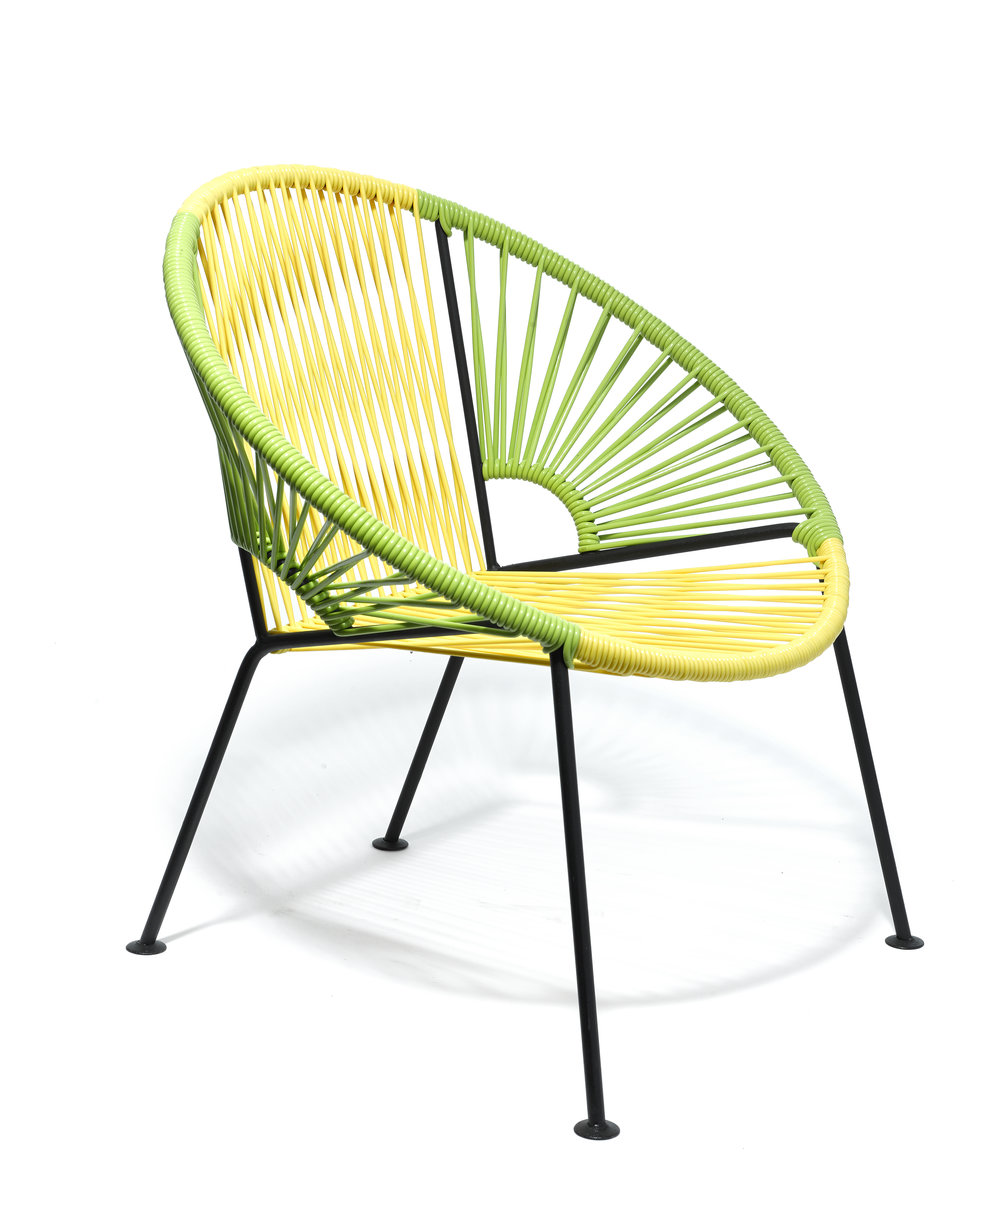 Mini Ixtapa Chair Mexashop Mexashop Production Guadalajara, Mexico Contemporary / 2016 PVC cord, steel frame, wood SH 12.75 in, H 25.5 in, W 24.75 in, D 15.5 in Currently have green/yellow color cord & seafoam/yellow LIST PRICE: $375 LEAD TIME: 3-5 Days Shipping & Handling QUANTITY IN STOCK: 2 ONLINE PLATFORMS: kM Web, Artsy